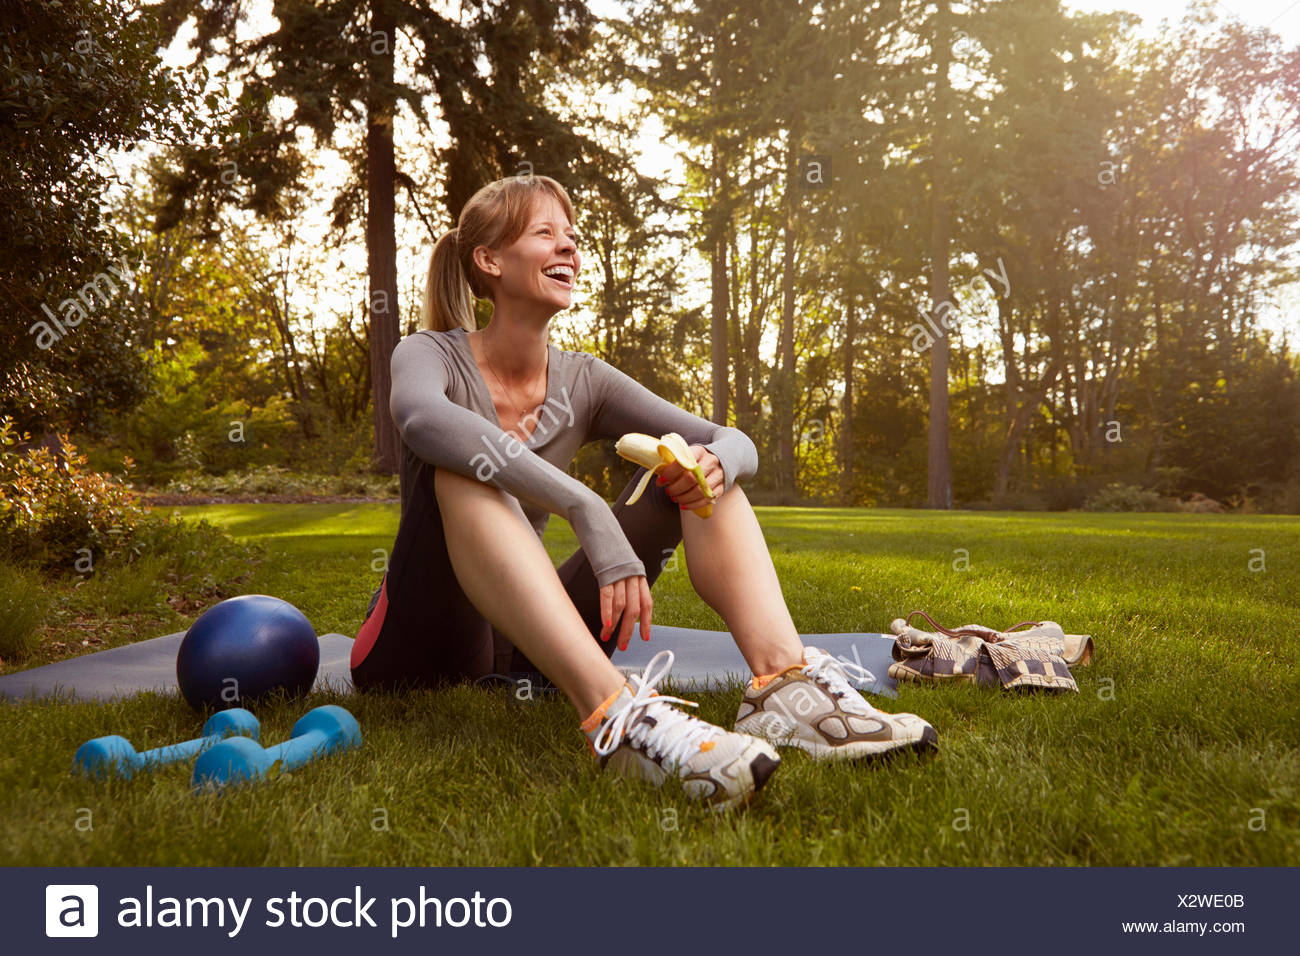 Mid adult woman sitting in park en pause Photo Stock